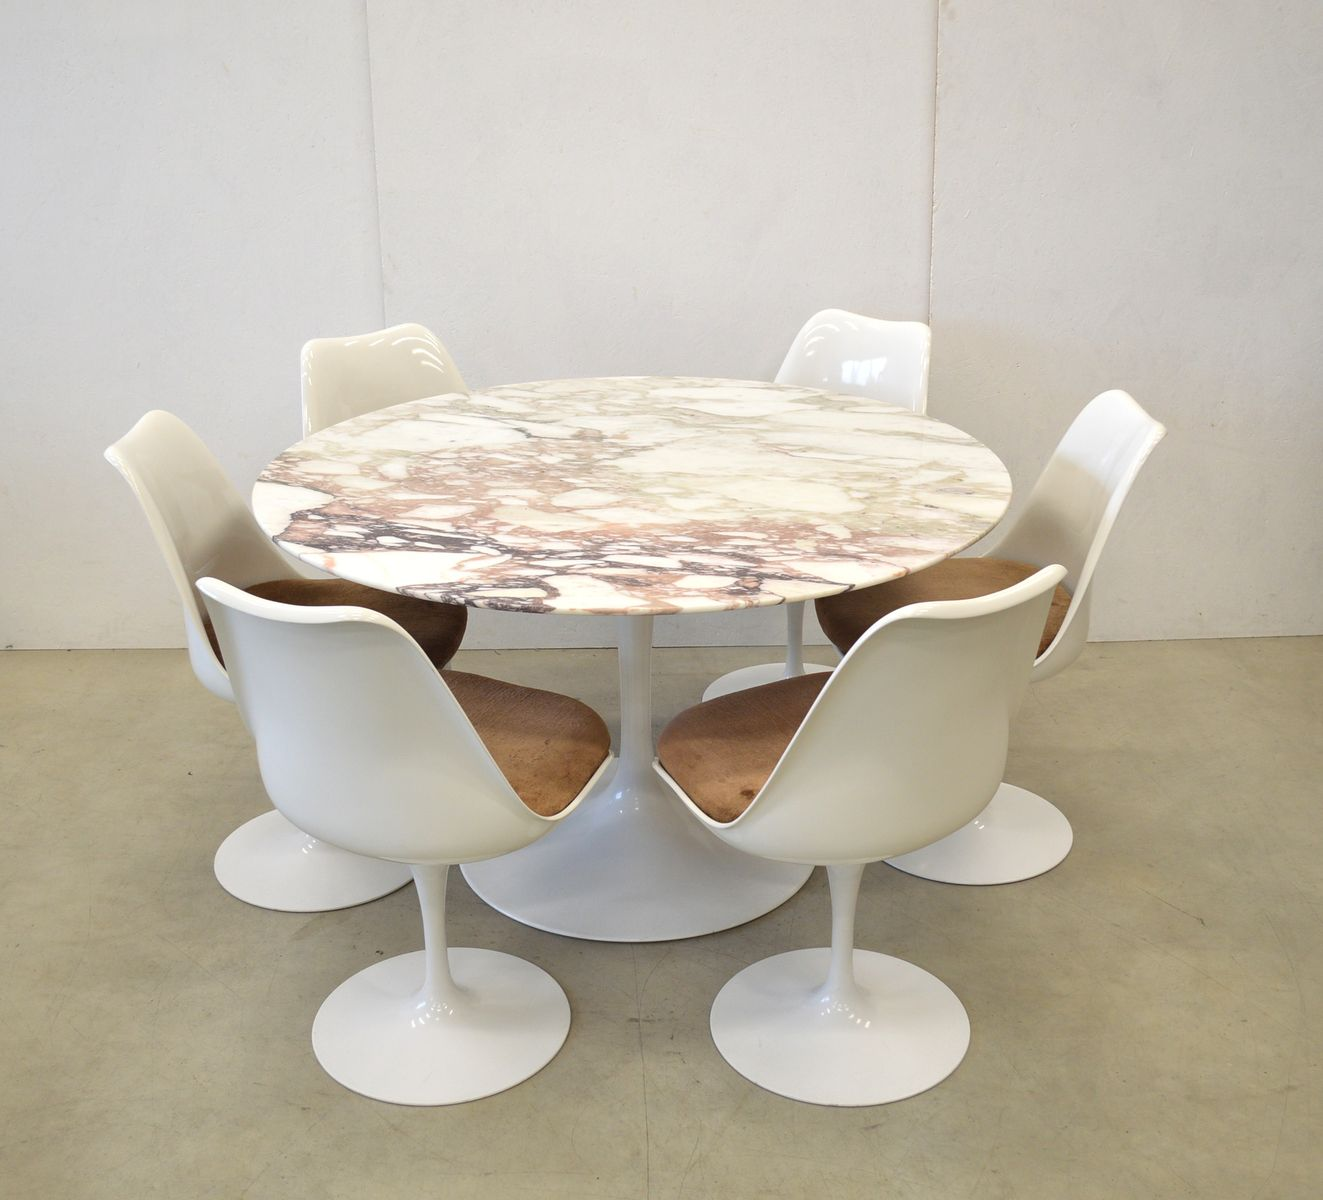 marble dining table 6 tulip chairs by eero saarinen for knoll international 1970s for sale at. Black Bedroom Furniture Sets. Home Design Ideas